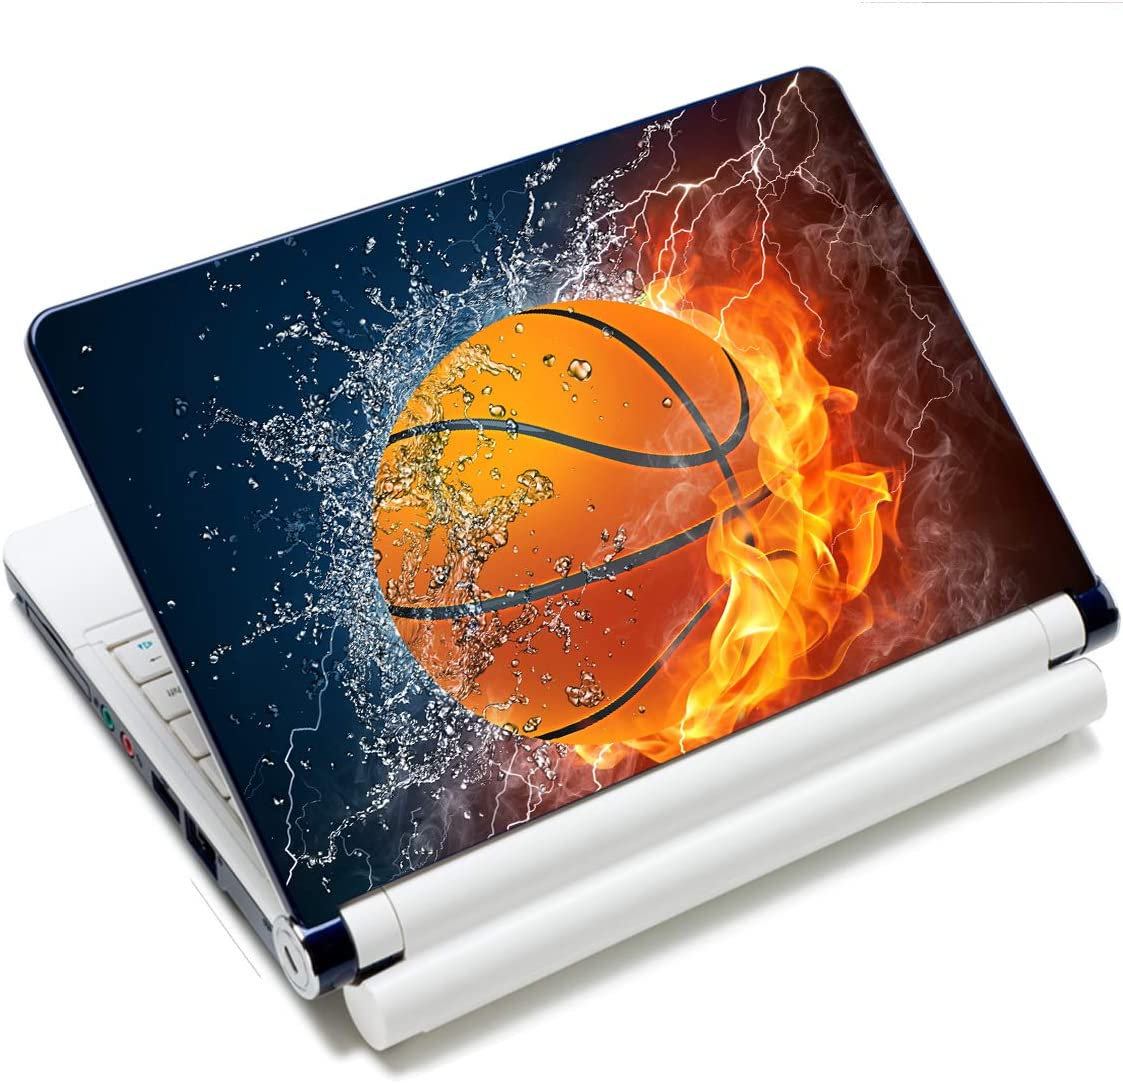 Laptop Notebook Skin Sticker Cover Decal Fits 12 13 13.3 14 15 15.4 15.6 inch Laptop Protector Notebook PC | Easy to Apply, Remove and Change Styles (Basketball Fire)